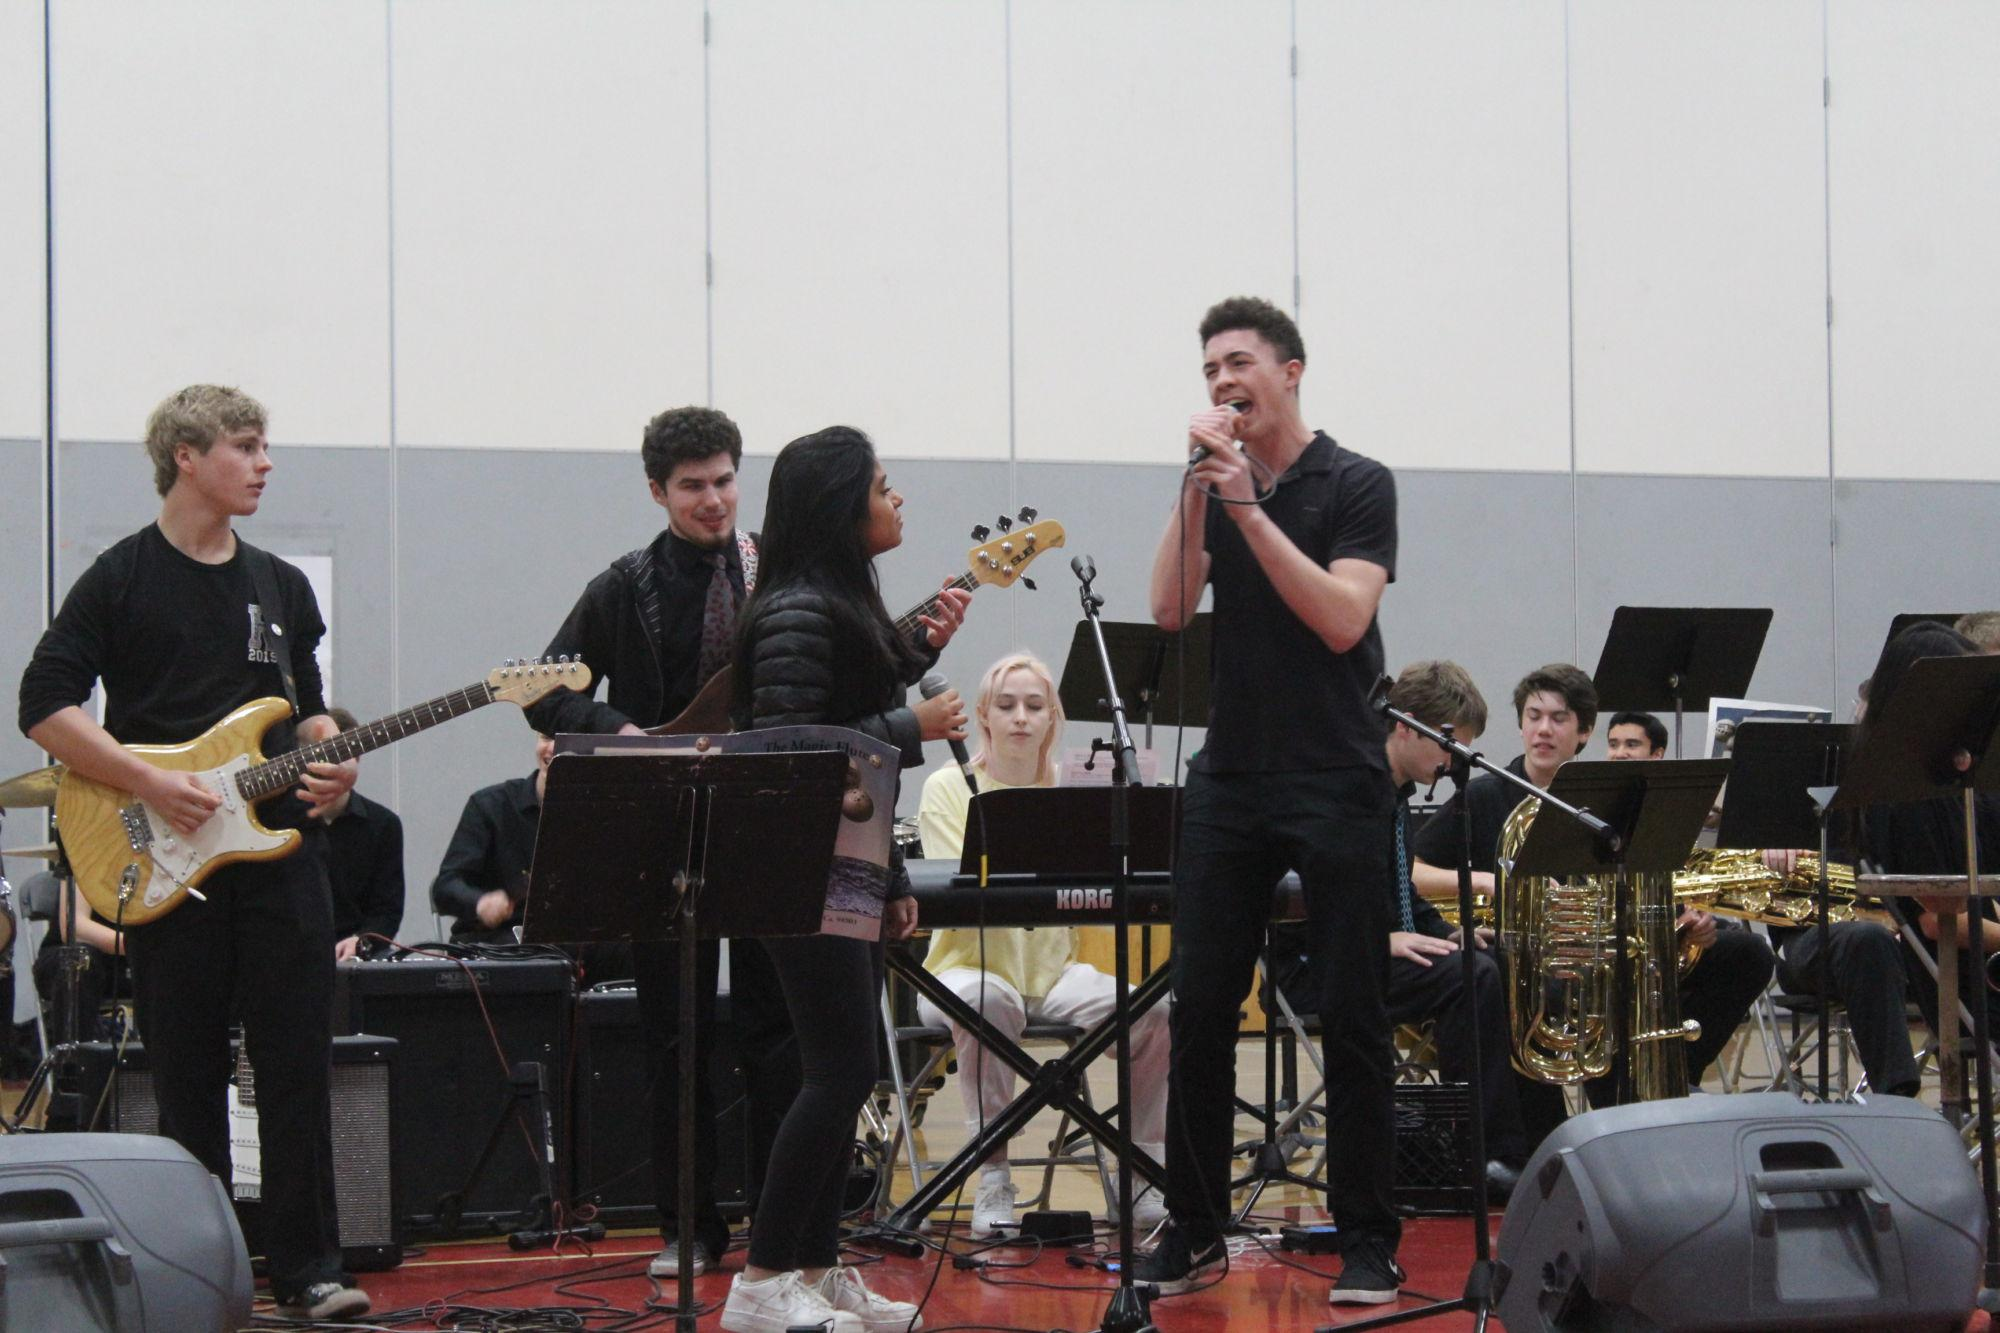 Rocking advisory: bands expose students to a range of music